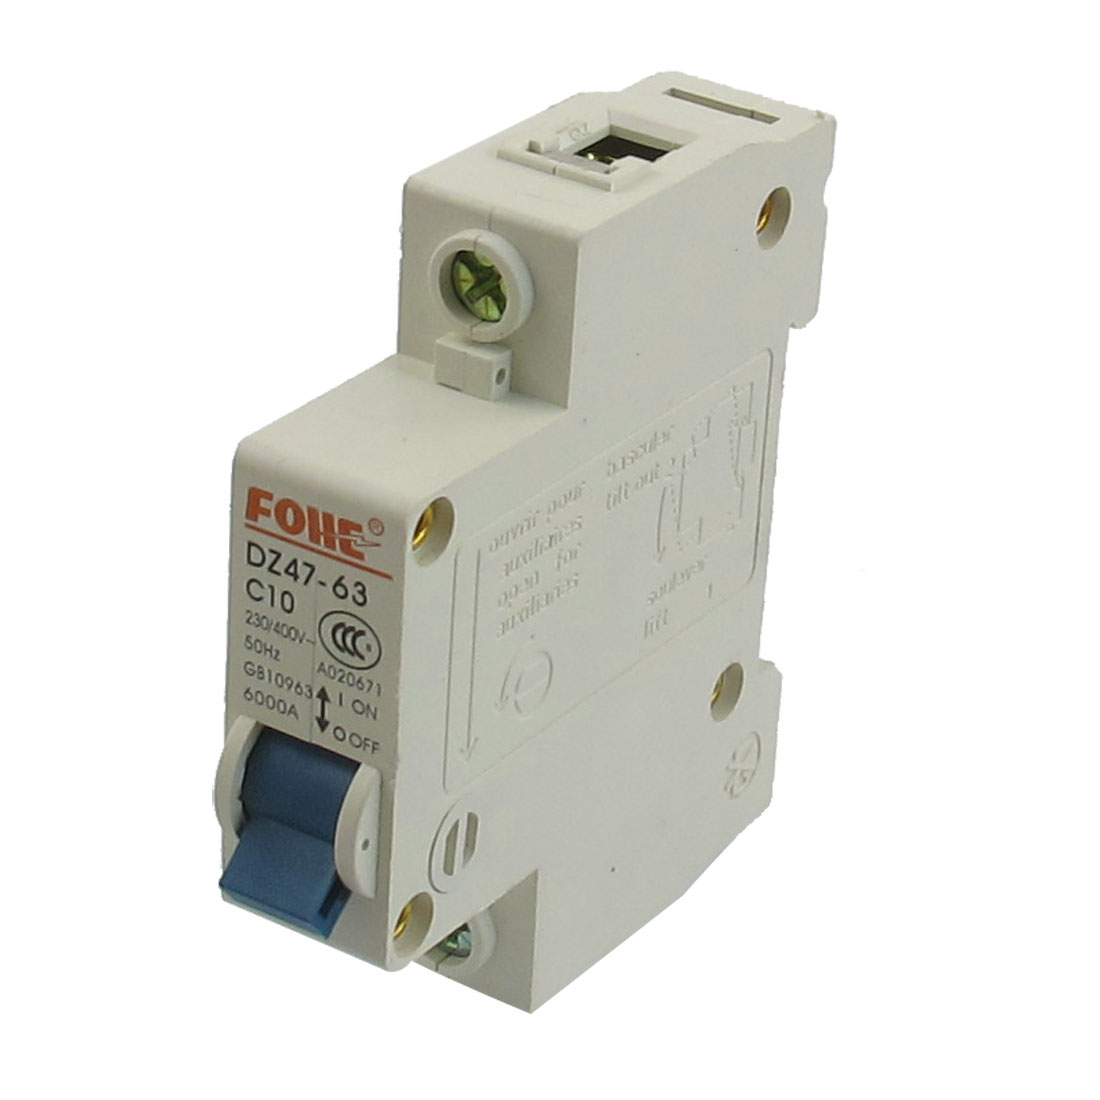 AC 400V 10A Single Pole Overload Protection MCB Mini Circuit Breaker